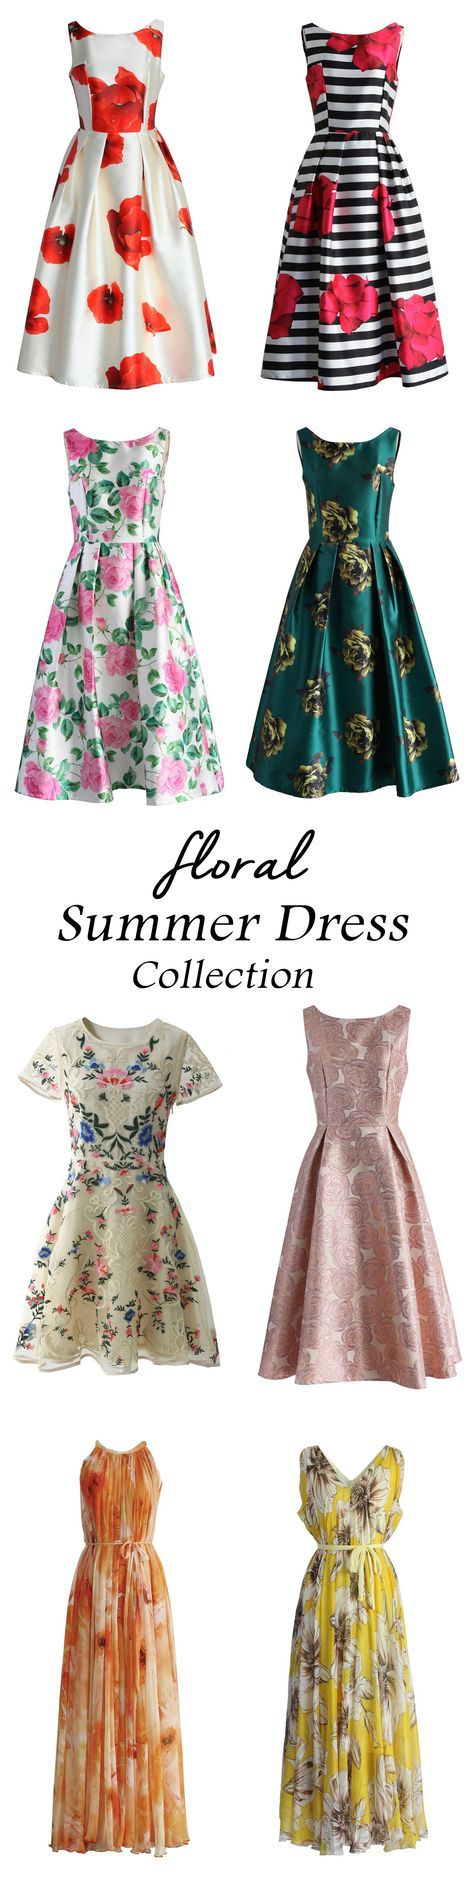 Floral summer dress collection chicwish.com